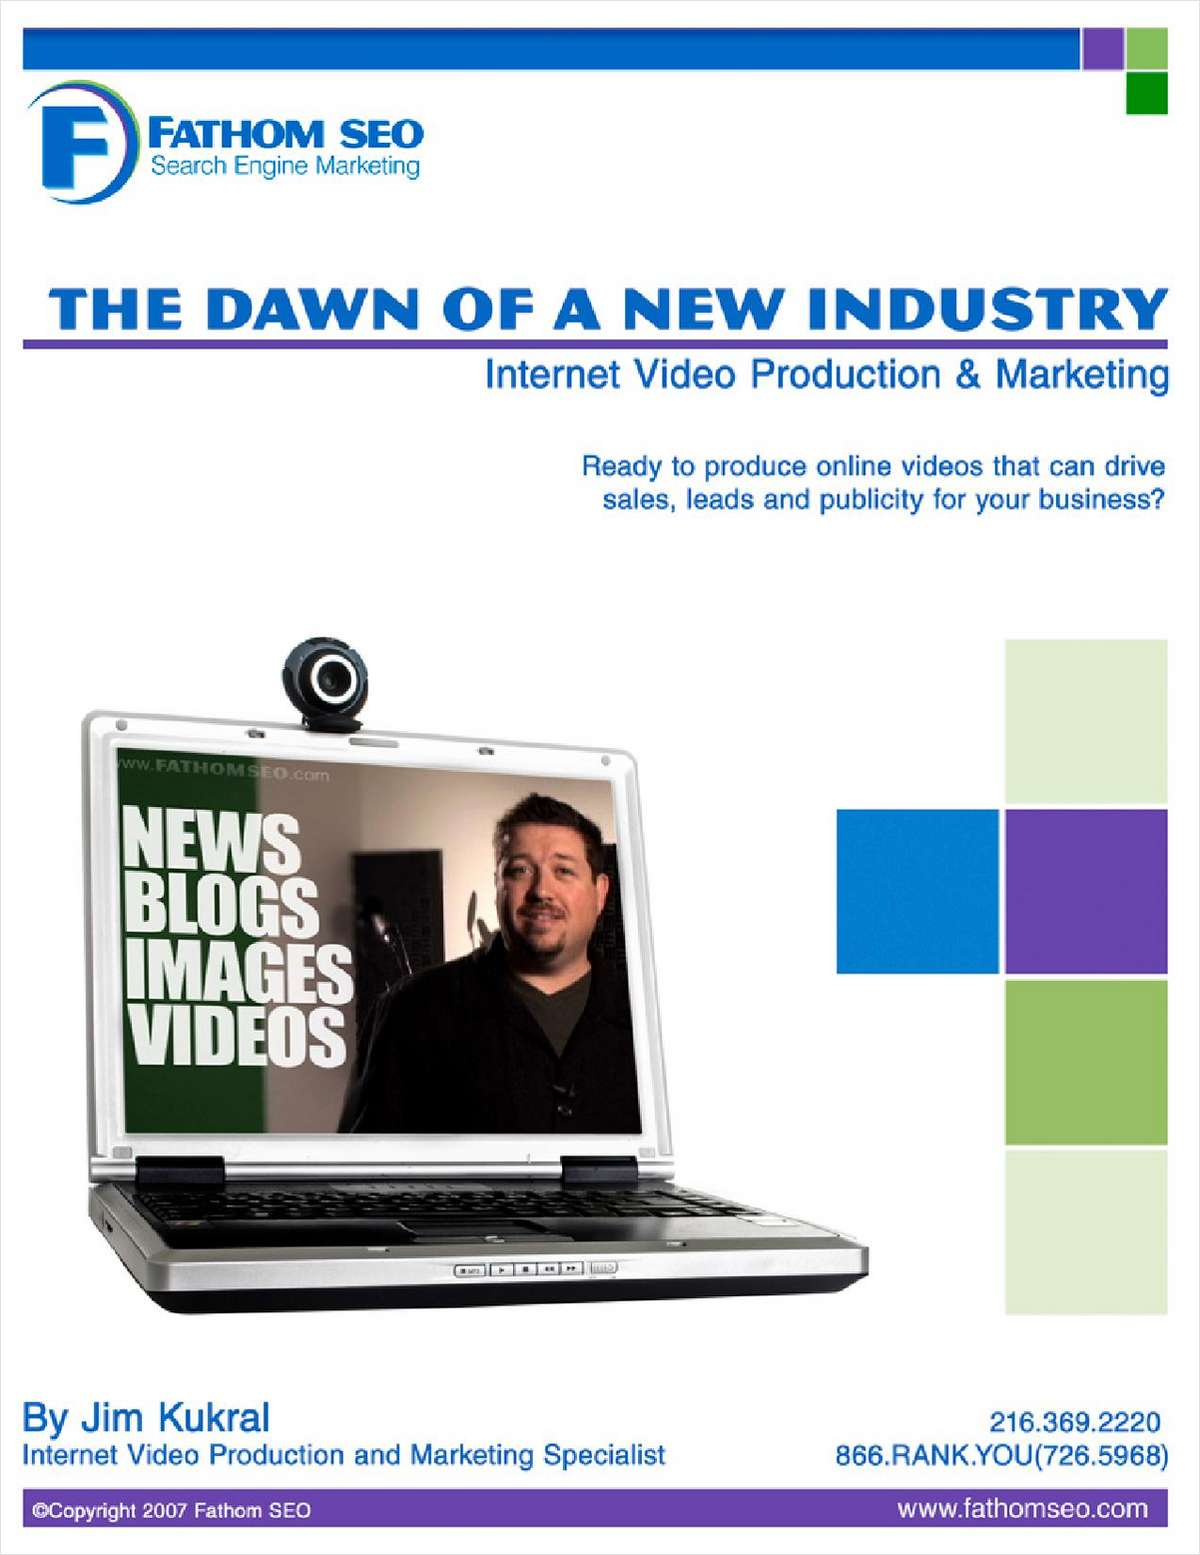 The Dawn of a New Industry - Internet Video Production and Marketing